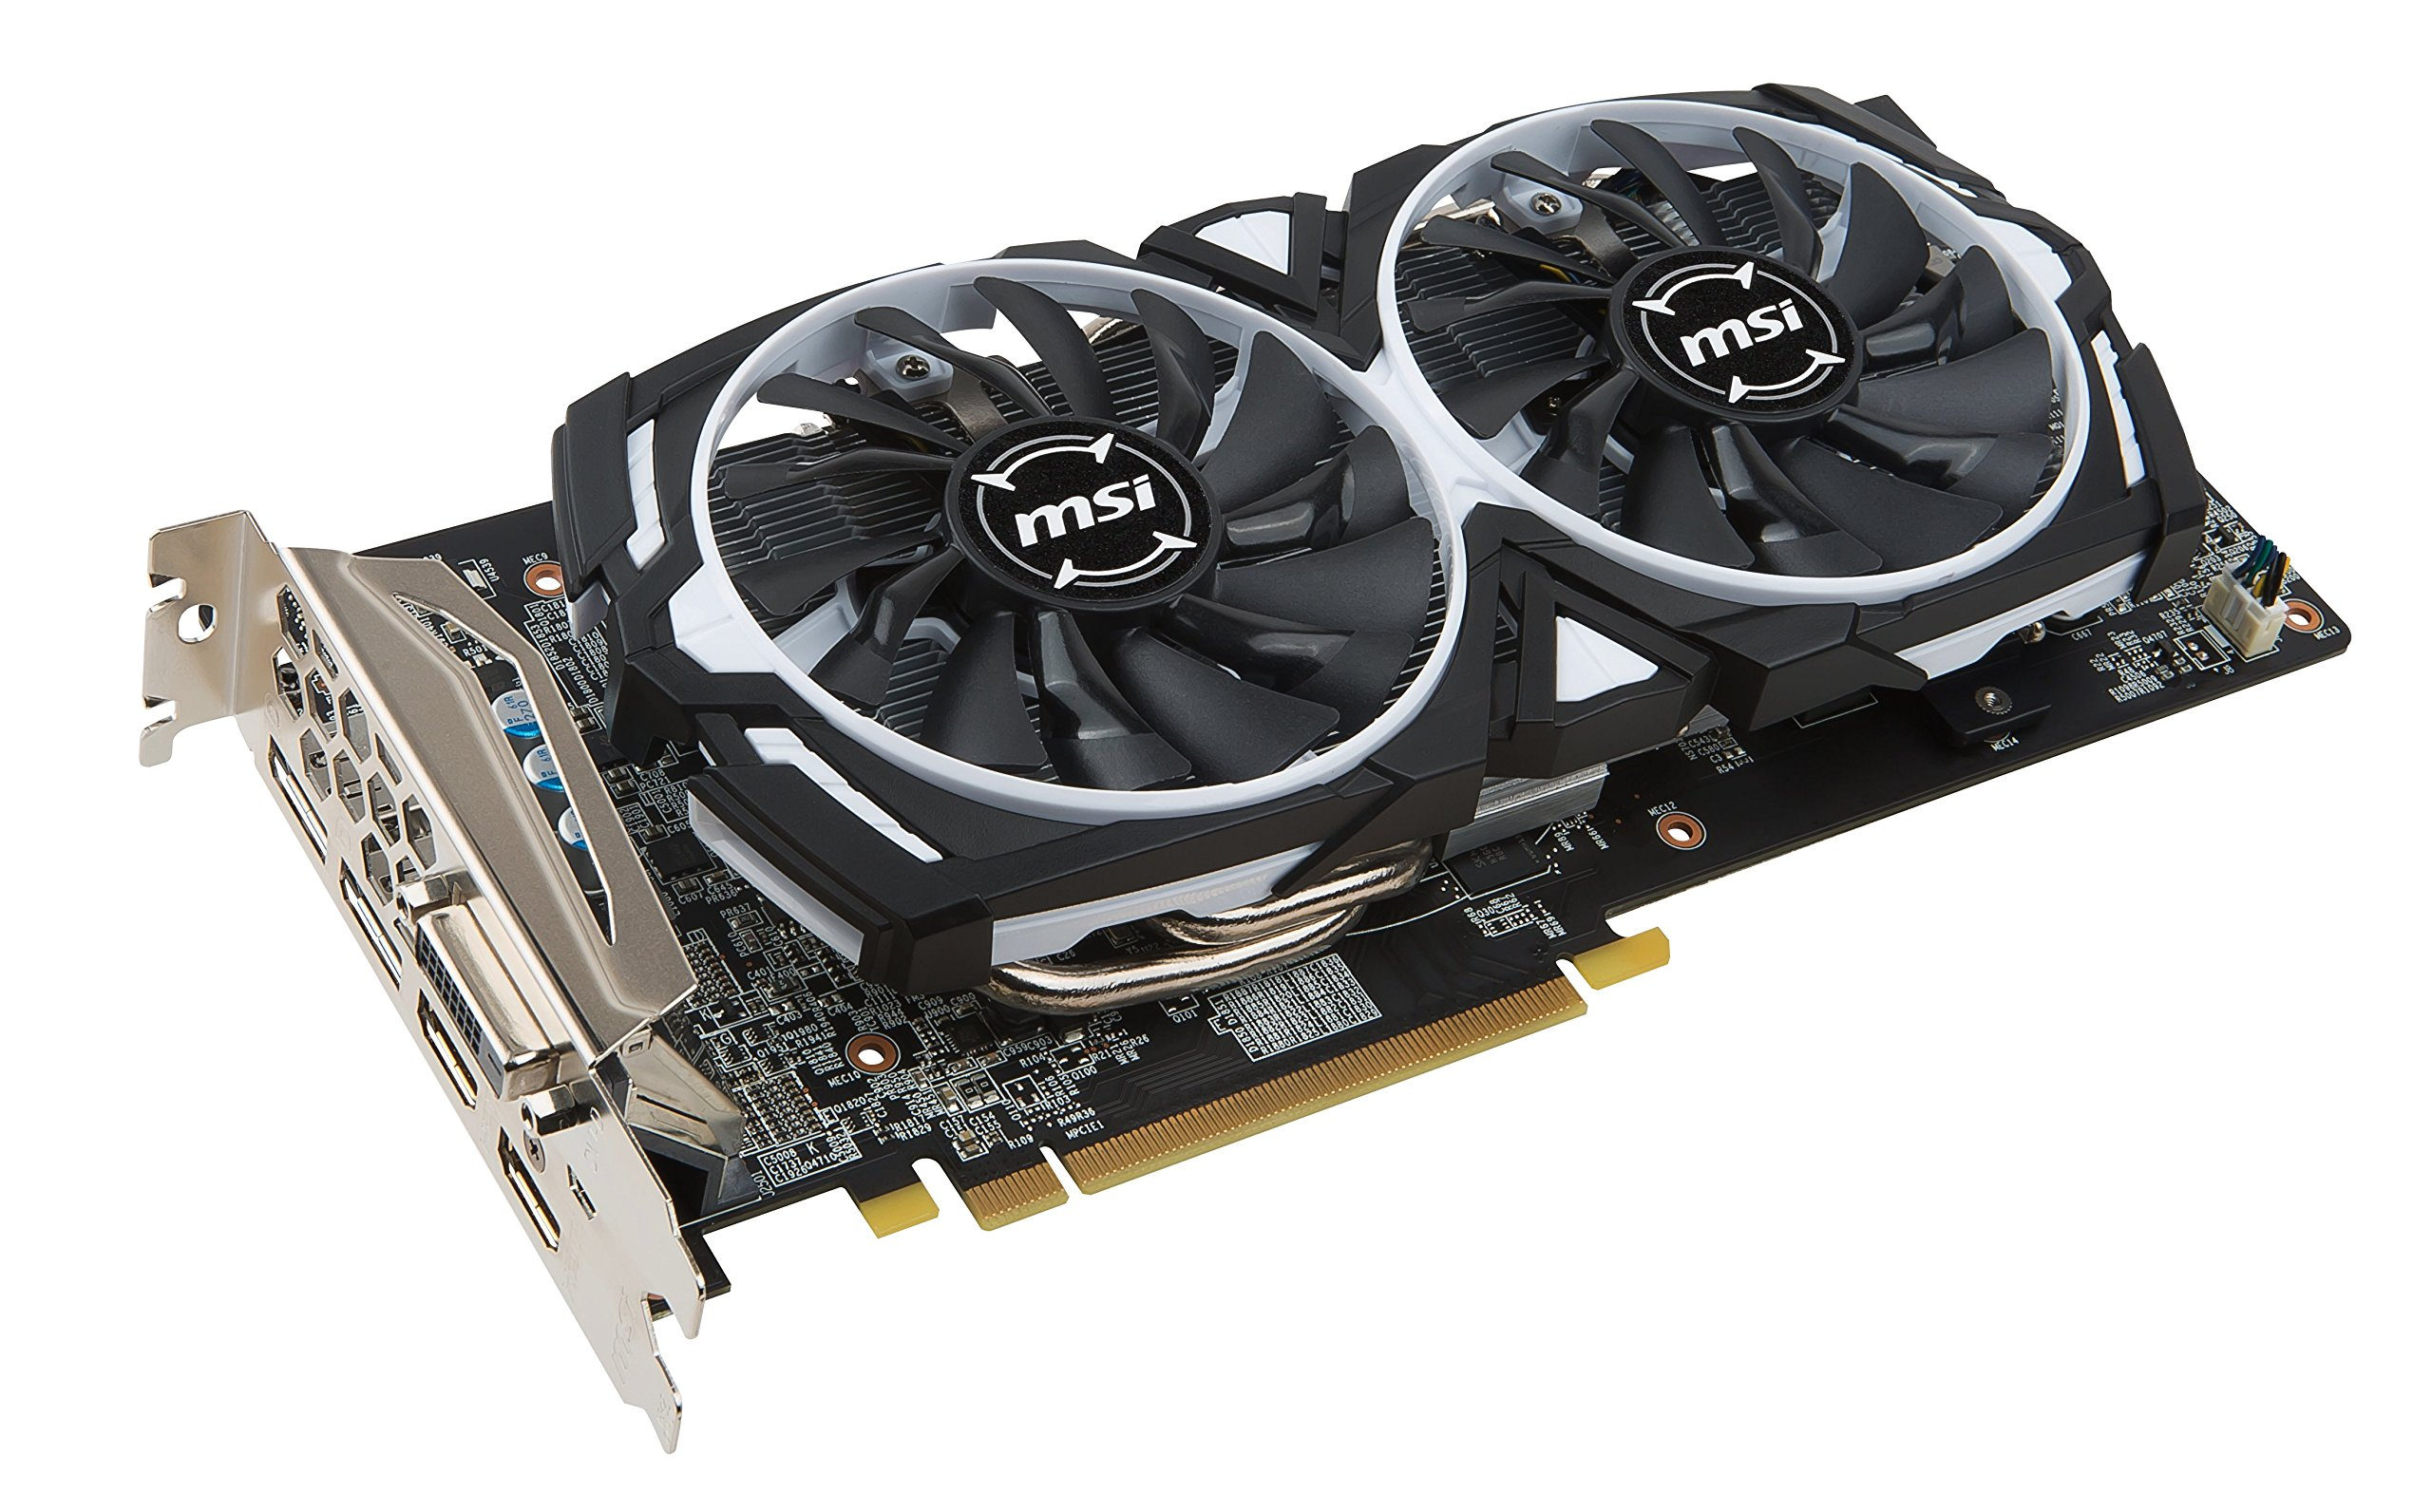 MSI VGA Graphic Cards RX 580 Armor 8G OC by MSI (Image #2)